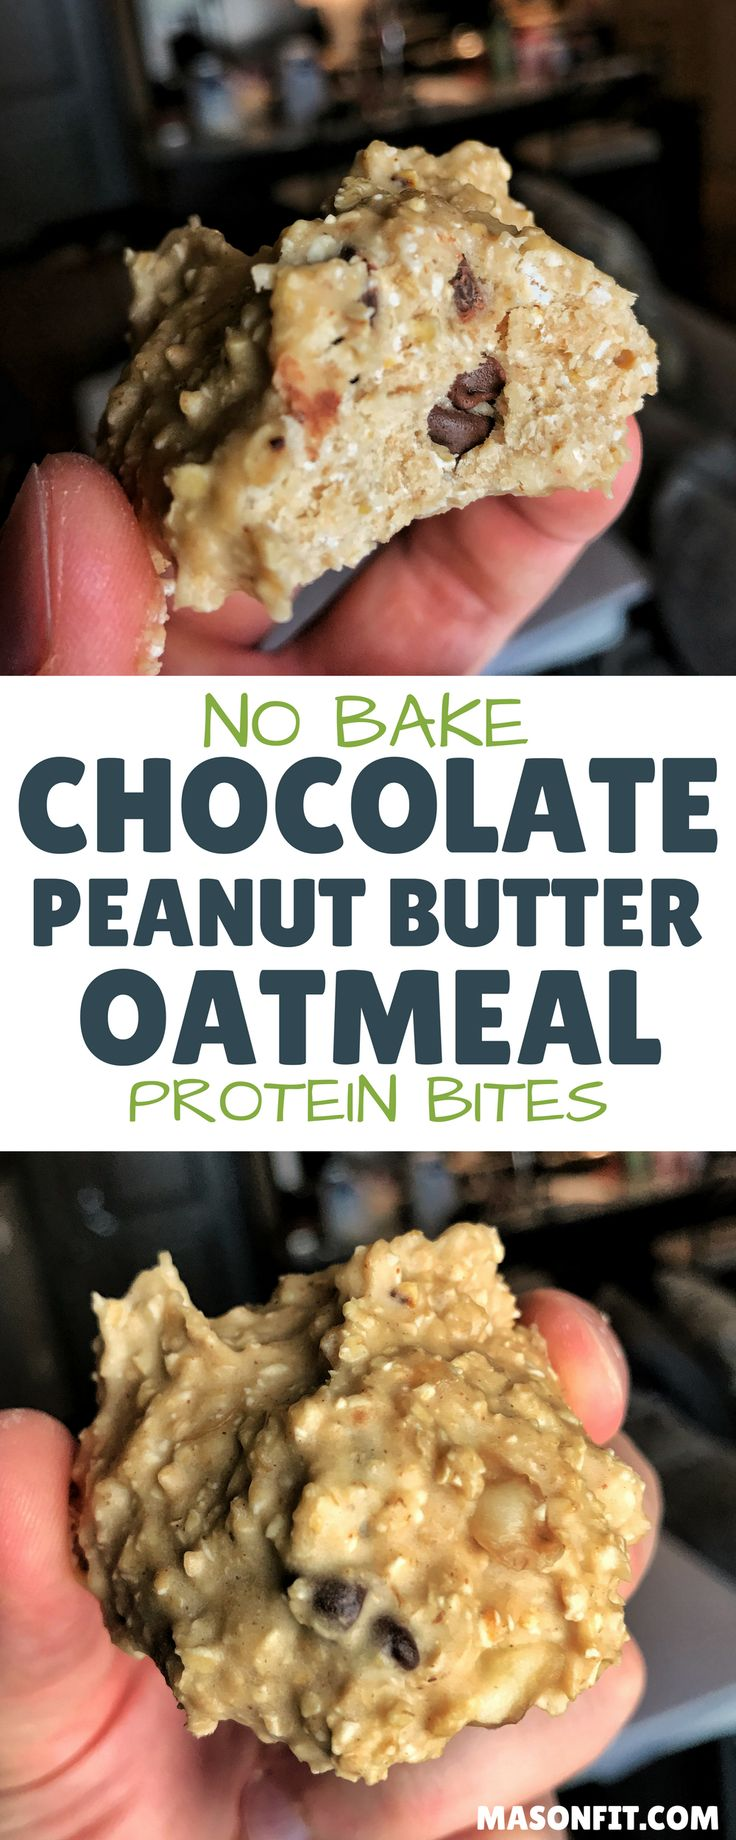 A super easy recipe for oatmeal and peanut butter bites without the fat and calories of regular energy bites. With 65 calories and 6 grams of protein per bite, these are perfect for a snack around your workout! via @masonfitdotcom